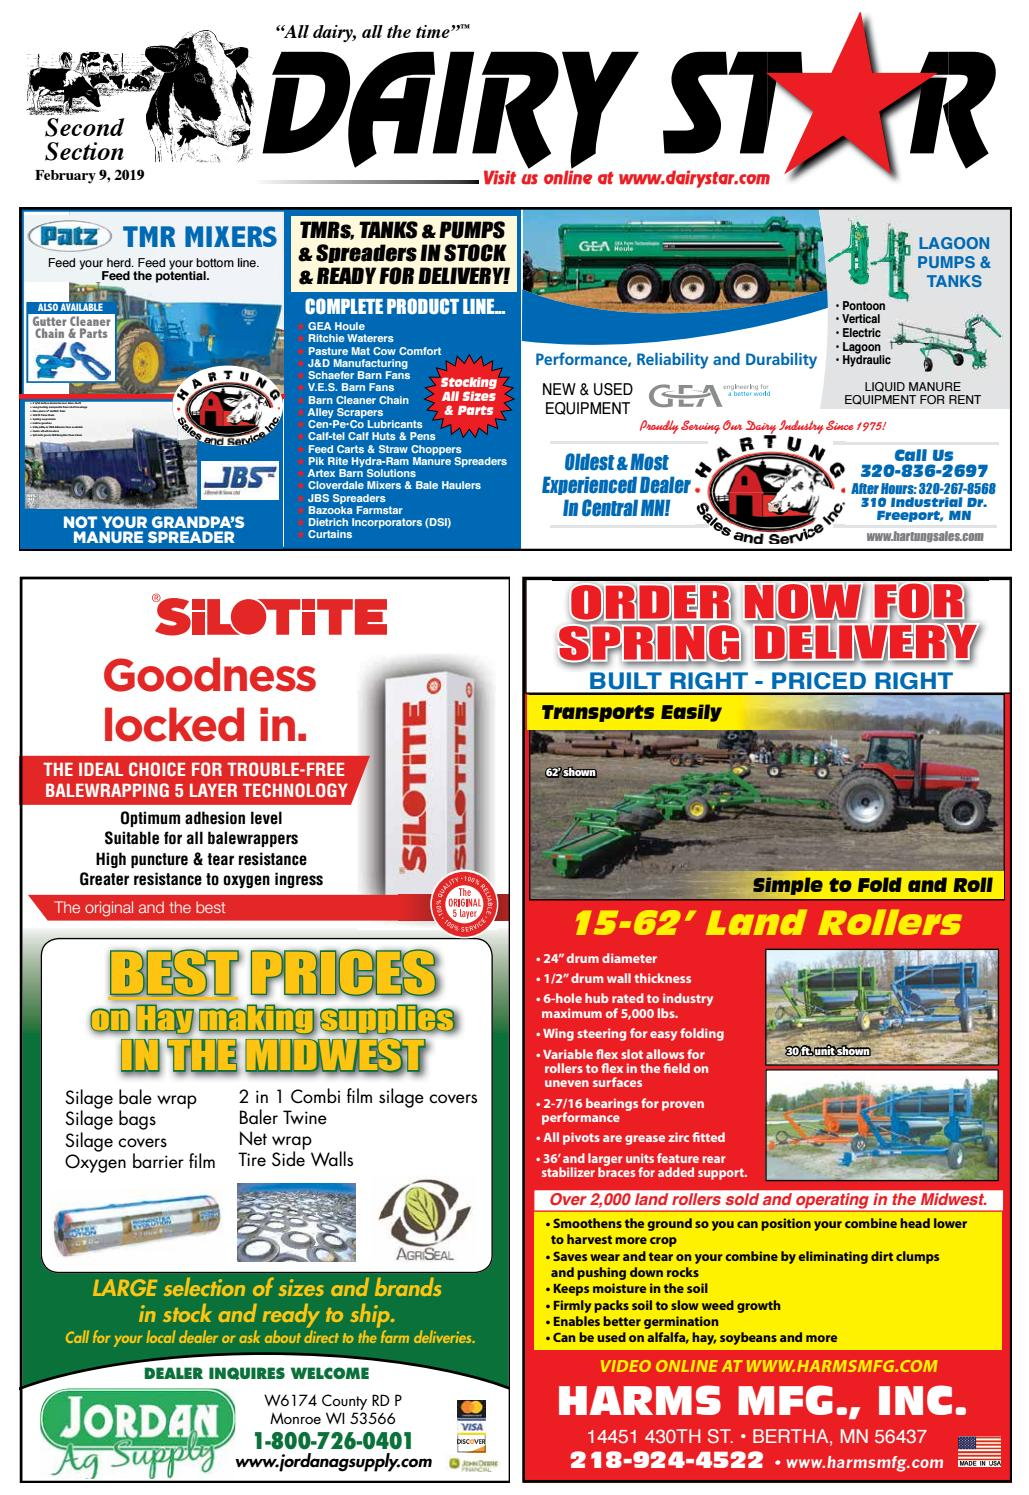 Dairy Star February 9, 2019 - 2nd section by Dairy Star - issuu